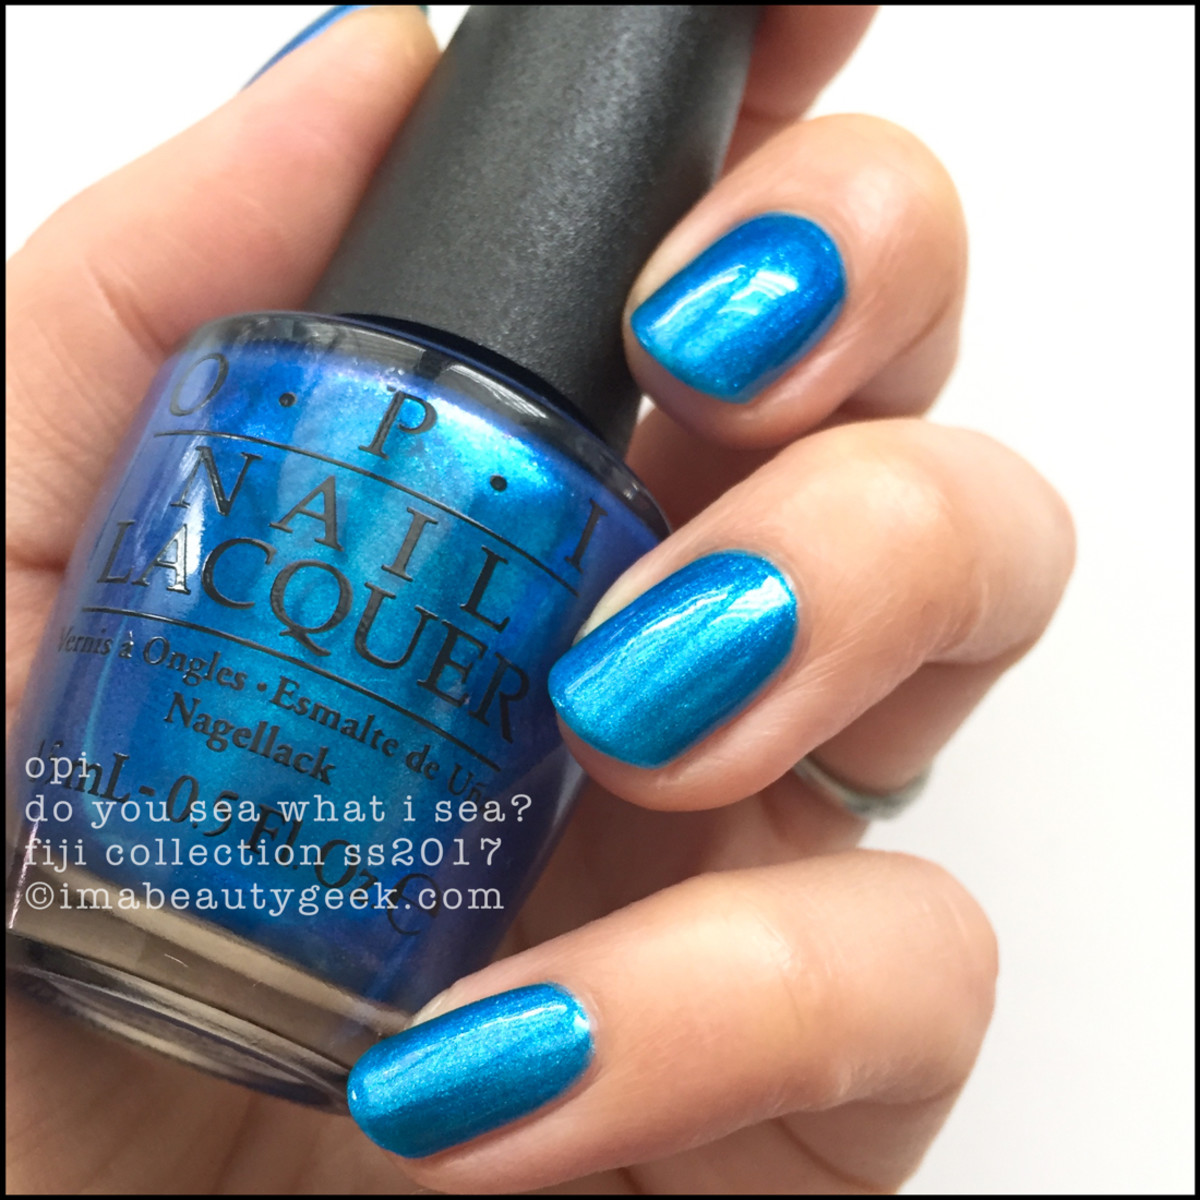 Opi Do You Sea What I Fiji Collection Swatches Review 2017